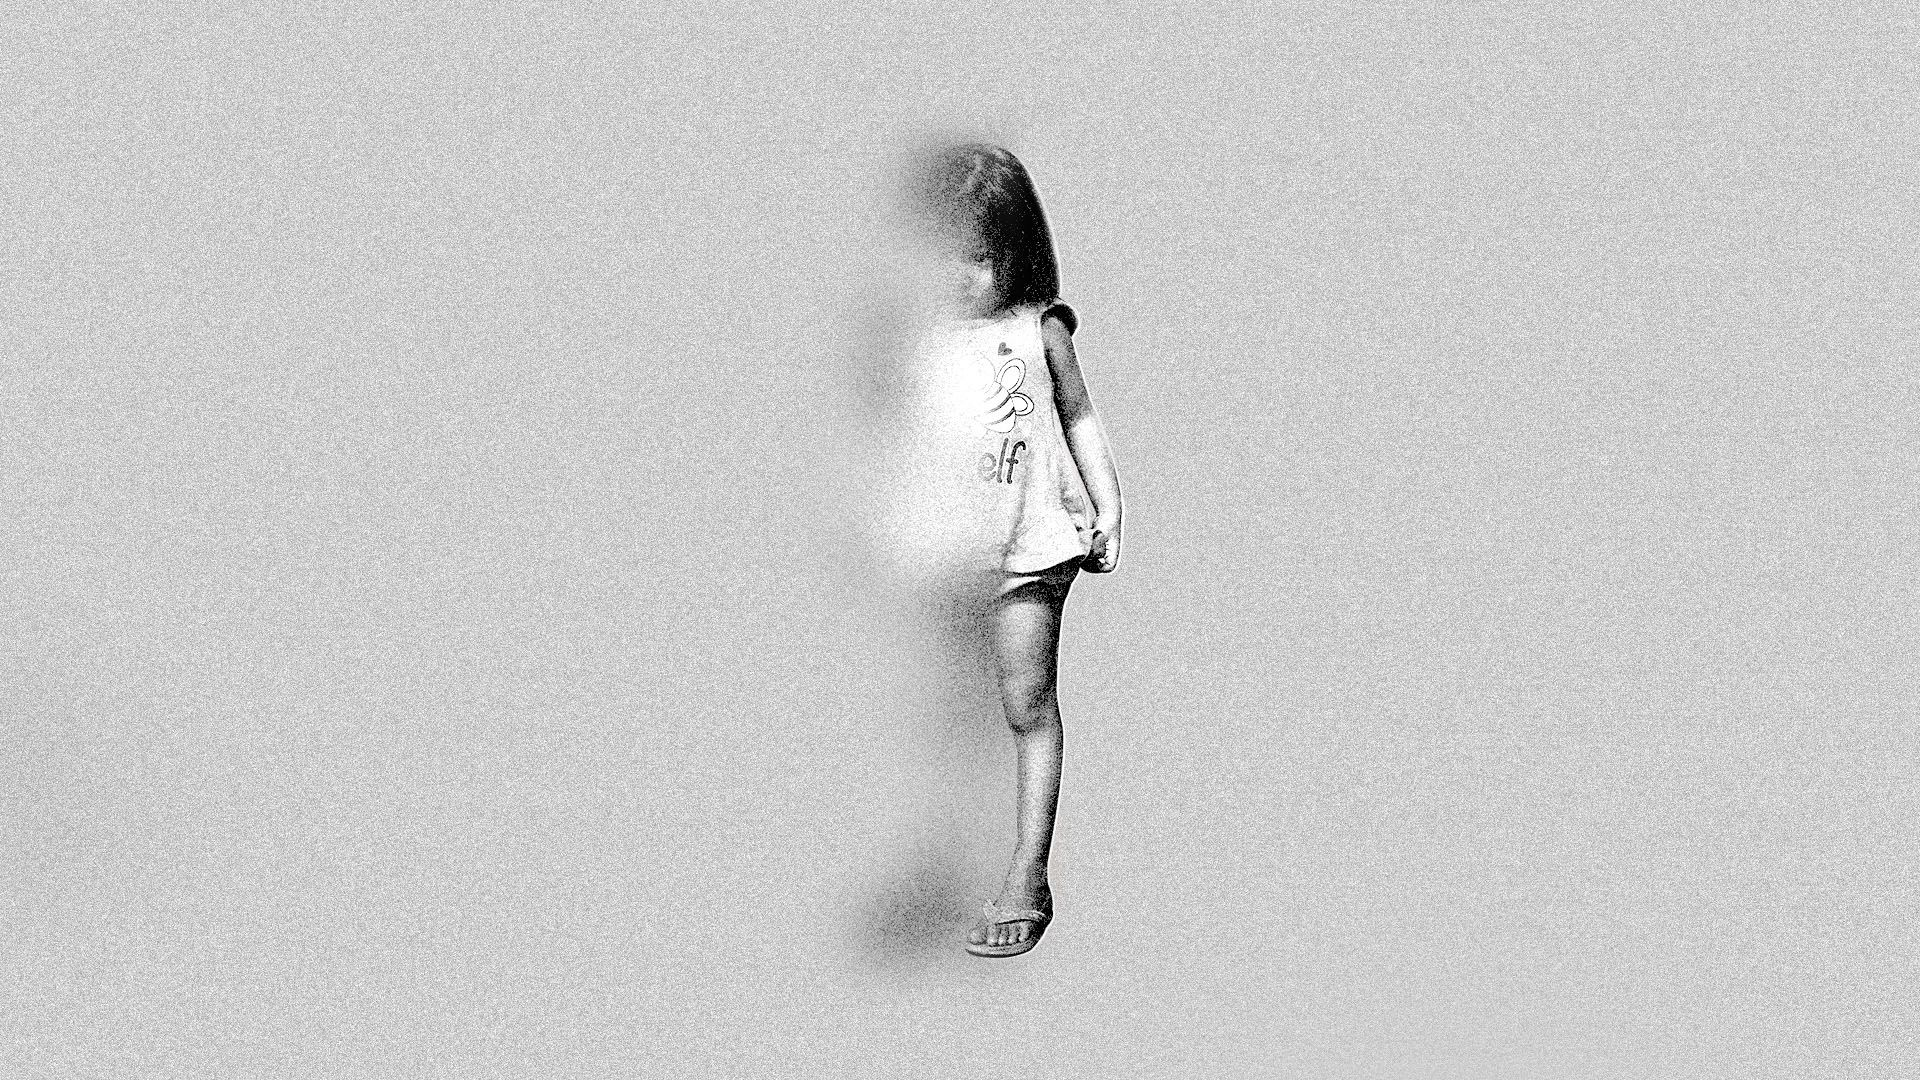 Image of young girl fading into a gray background